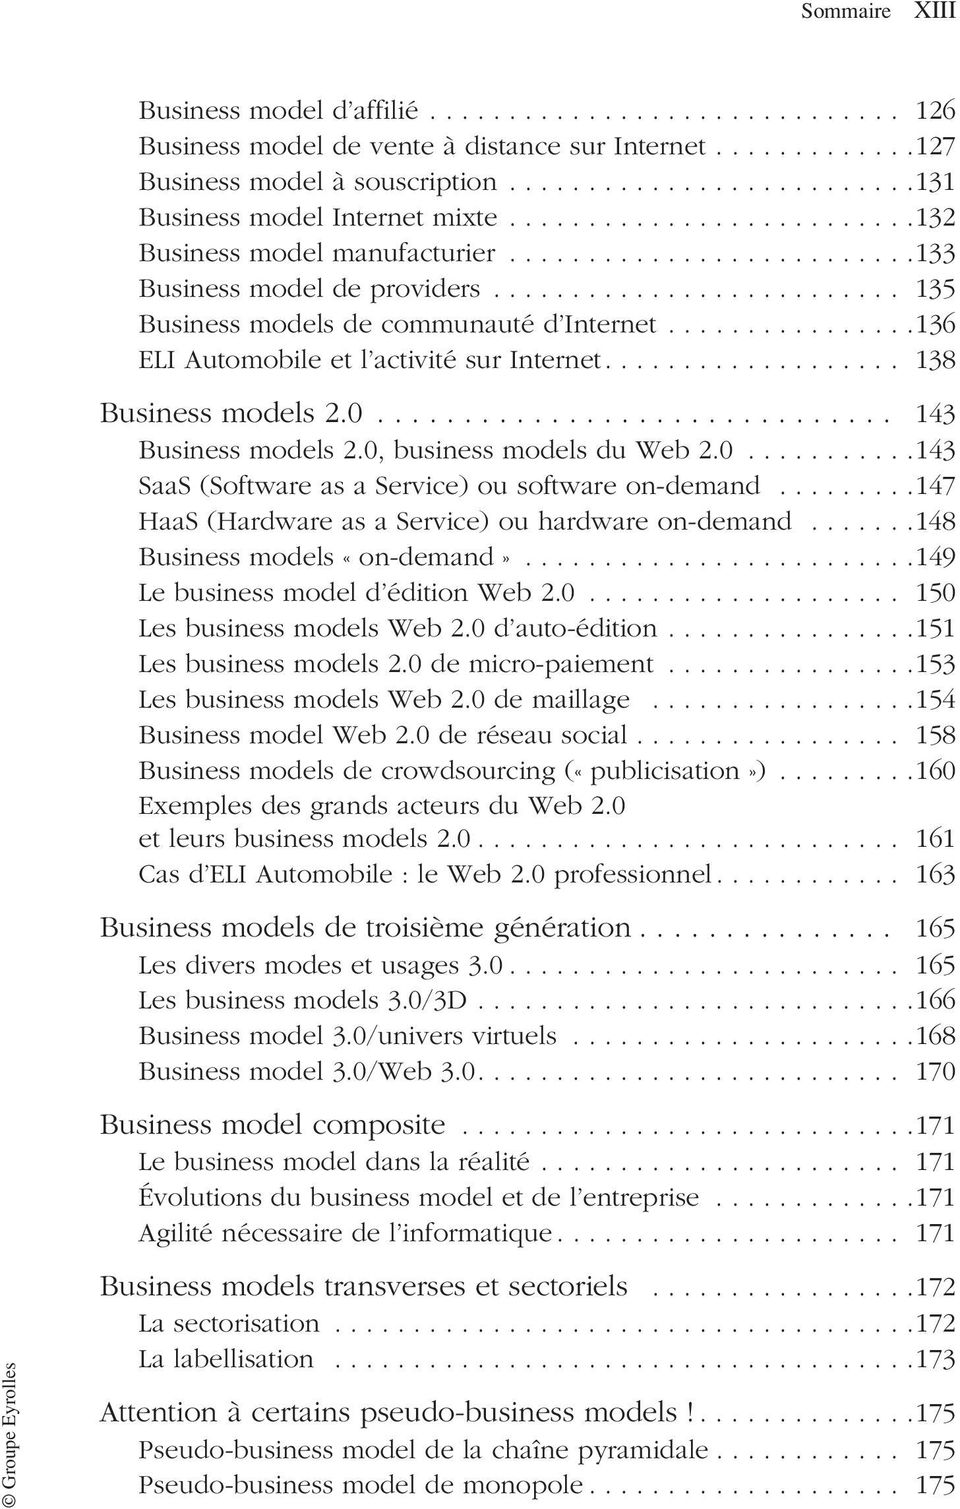 ......................... 135 Business models de communauté d Internet................136 ELI Automobile et l activité sur Internet................... 138 Business models 2.0.............................. 143 Business models 2.